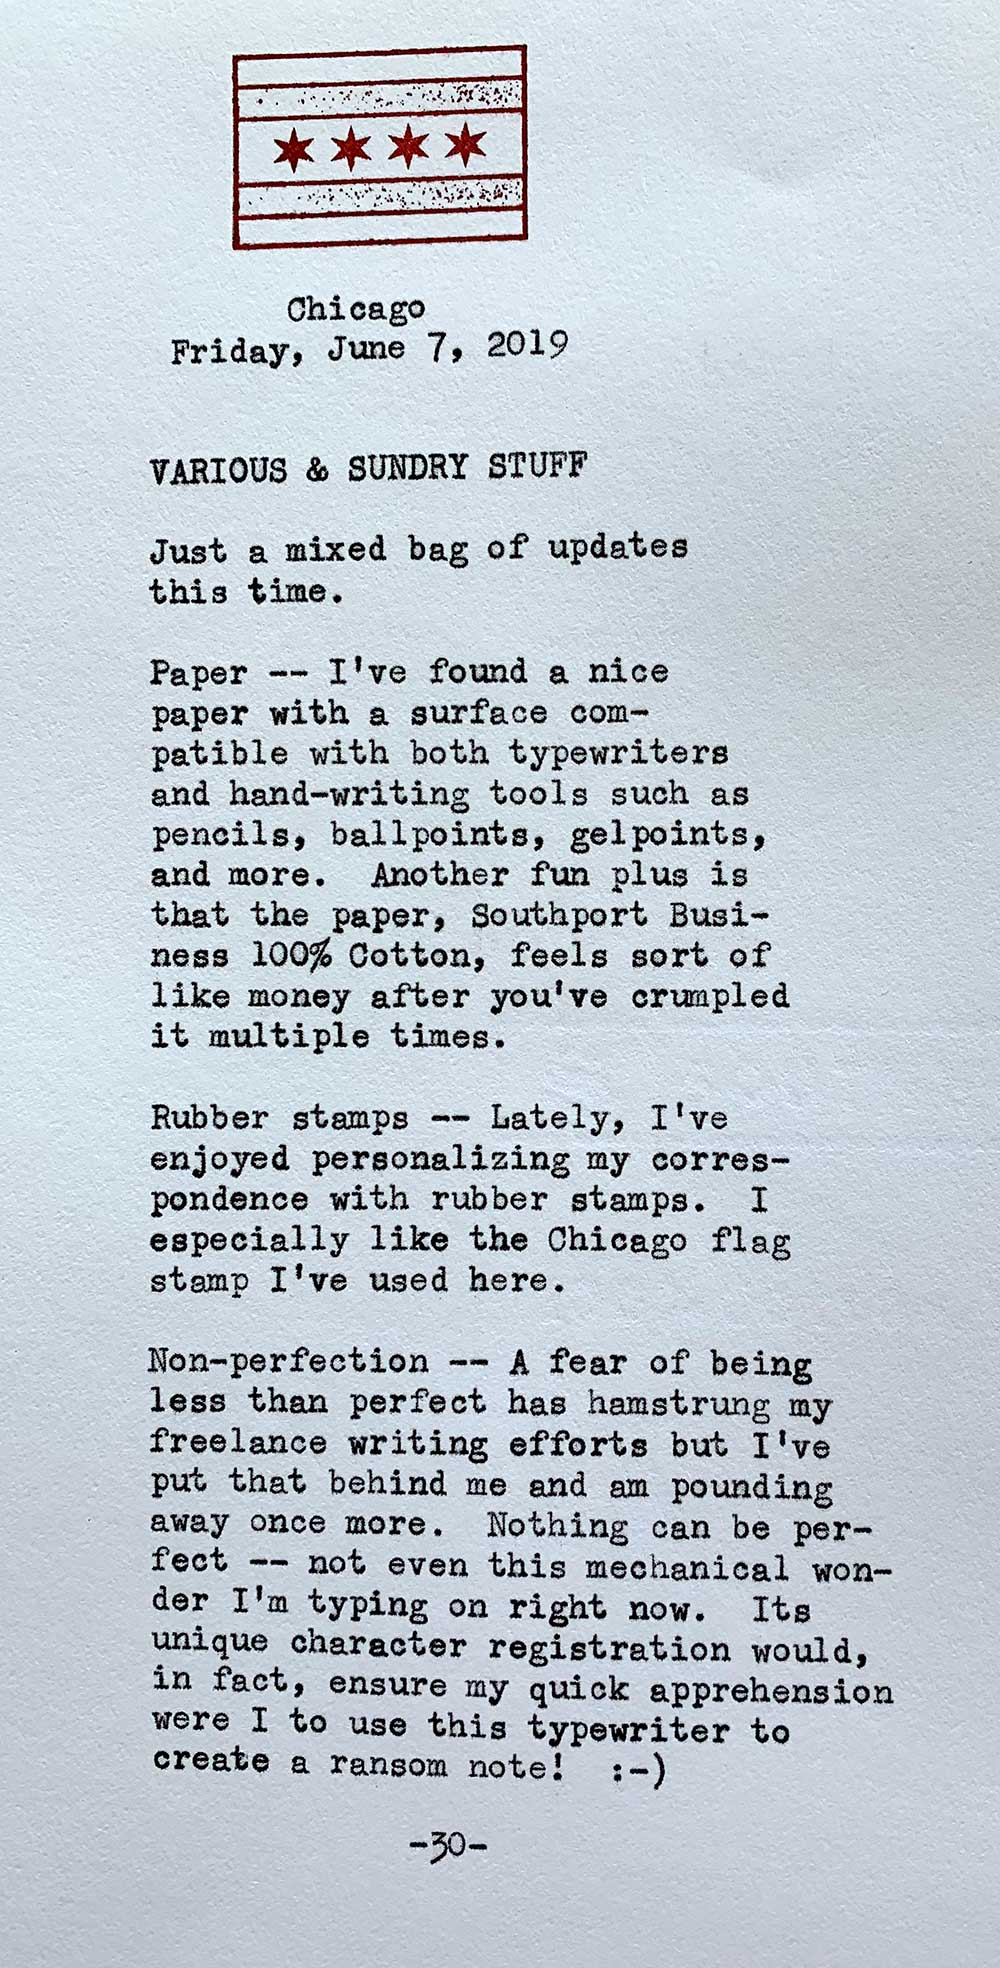 Photo of a typewritten page with the following text. Chicago, Friday, June 7, 2019. Just a mixed bag of updates this time. Paper -- I've found a nice  paper with a surface compatible with both typewriters  and hand-writing tools such as pencils, ballpoints, gel points,  and more. Another fun plus is that the paper, Southport, Business 100% Cotton, feels sort of like money after you've crumpled  it multiple times. Rubber stamps -- Lately, I've enjoyed personalizing my correspondence with rubber stamps. I especially like the Chicago flag stamp I've used here. Non-perfection -- A fear of being less than perfect has hamstrung my freelance writing efforts but I've put that behind me and am pounding away once more. Nothing can be per fect -- not even this mechanical wonder I 'm typing on right now. Its unique character registration would, in fact, ensure my quick apprehension were I to use this typewriter to create a ransom note!